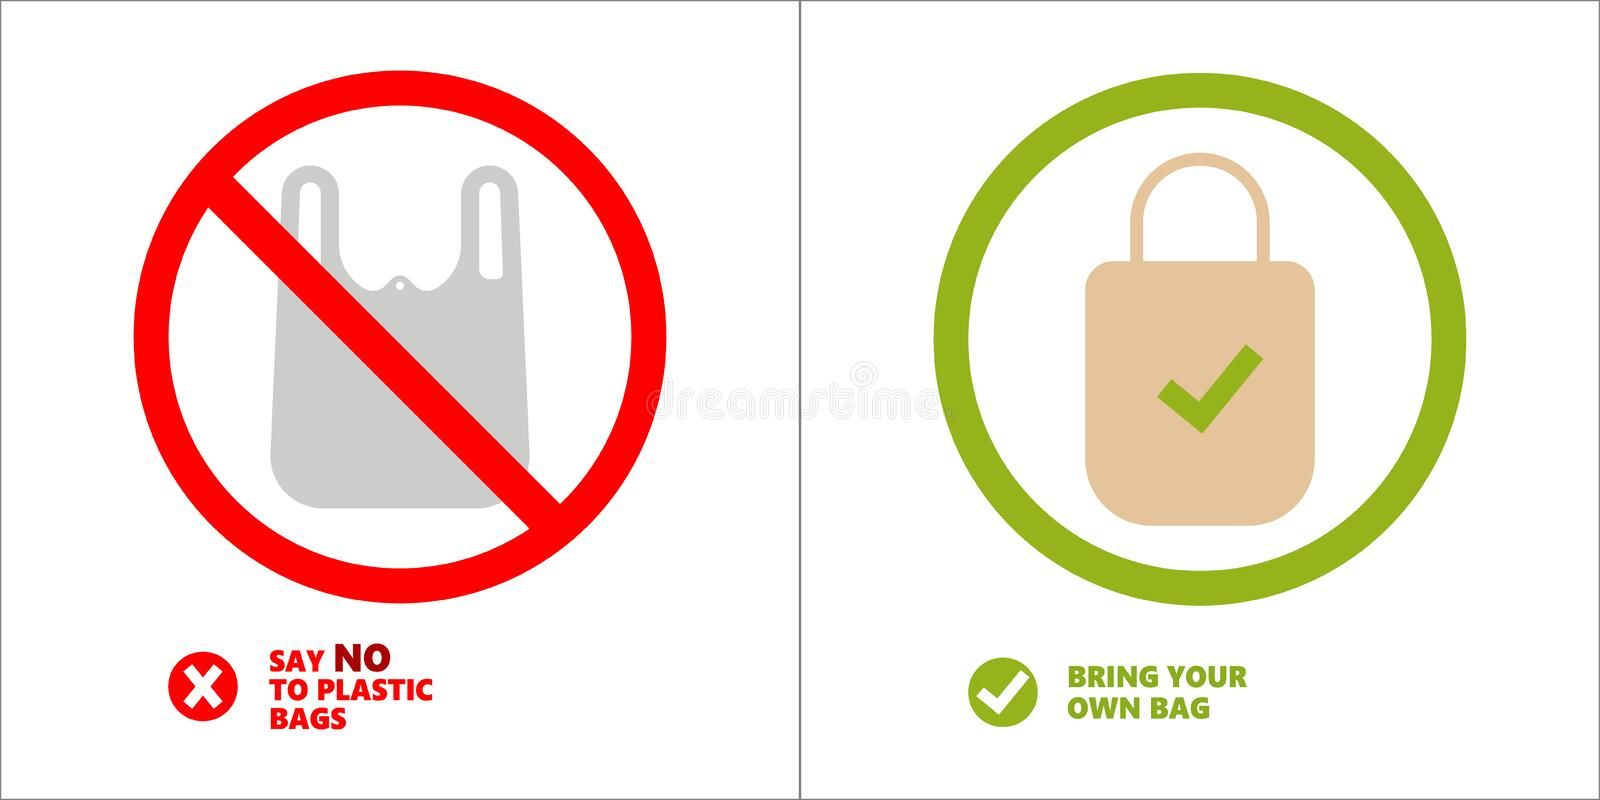 Pollution problem concept. Say no to plastic bags, bring your own textile bag. Cartoon styled images with signage calling royalty free stock photo